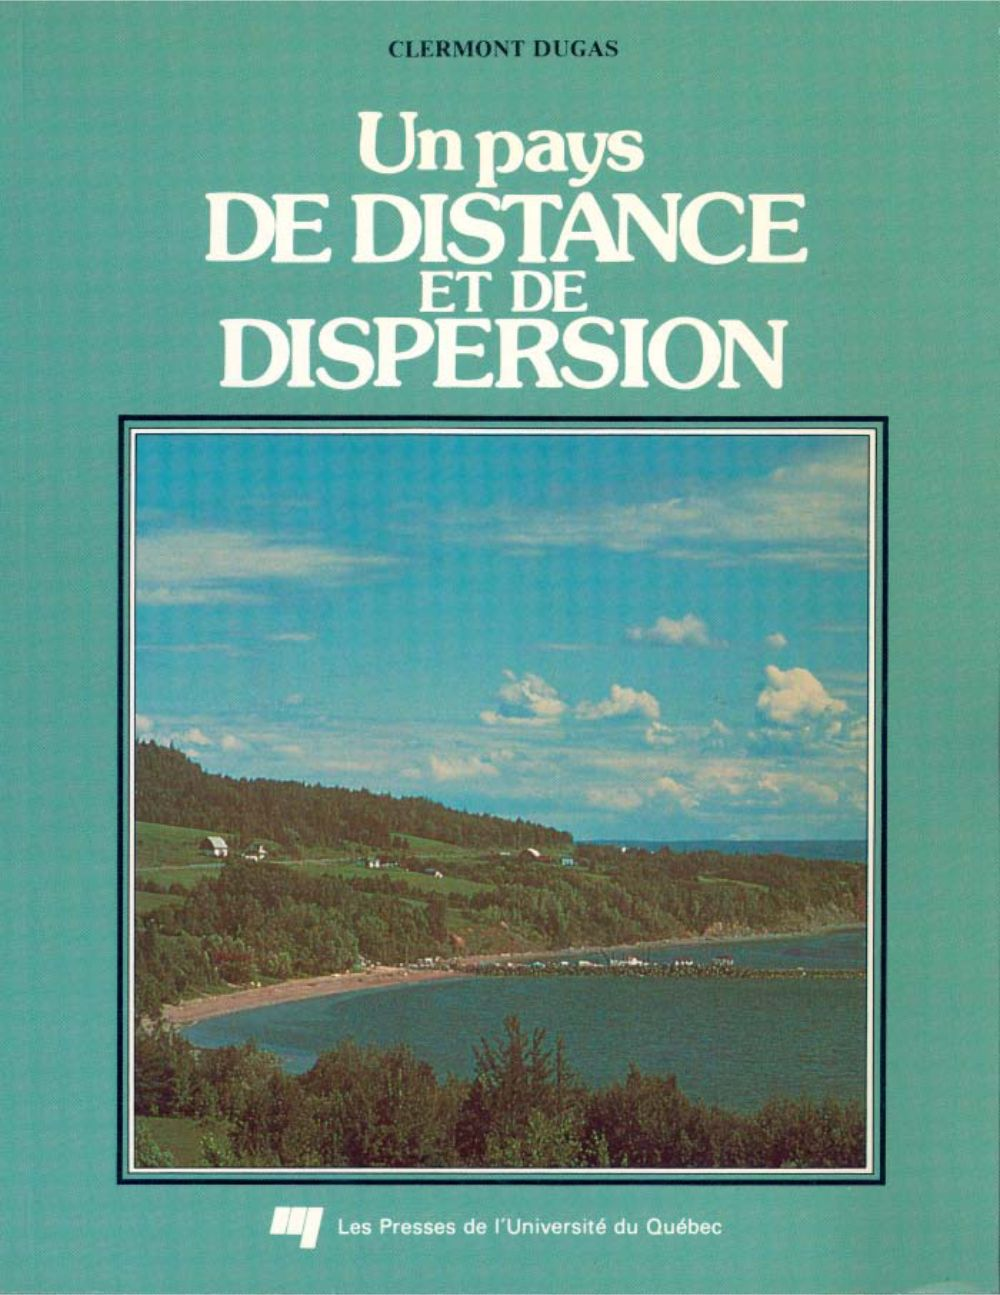 Un pays de distance et de dispersion